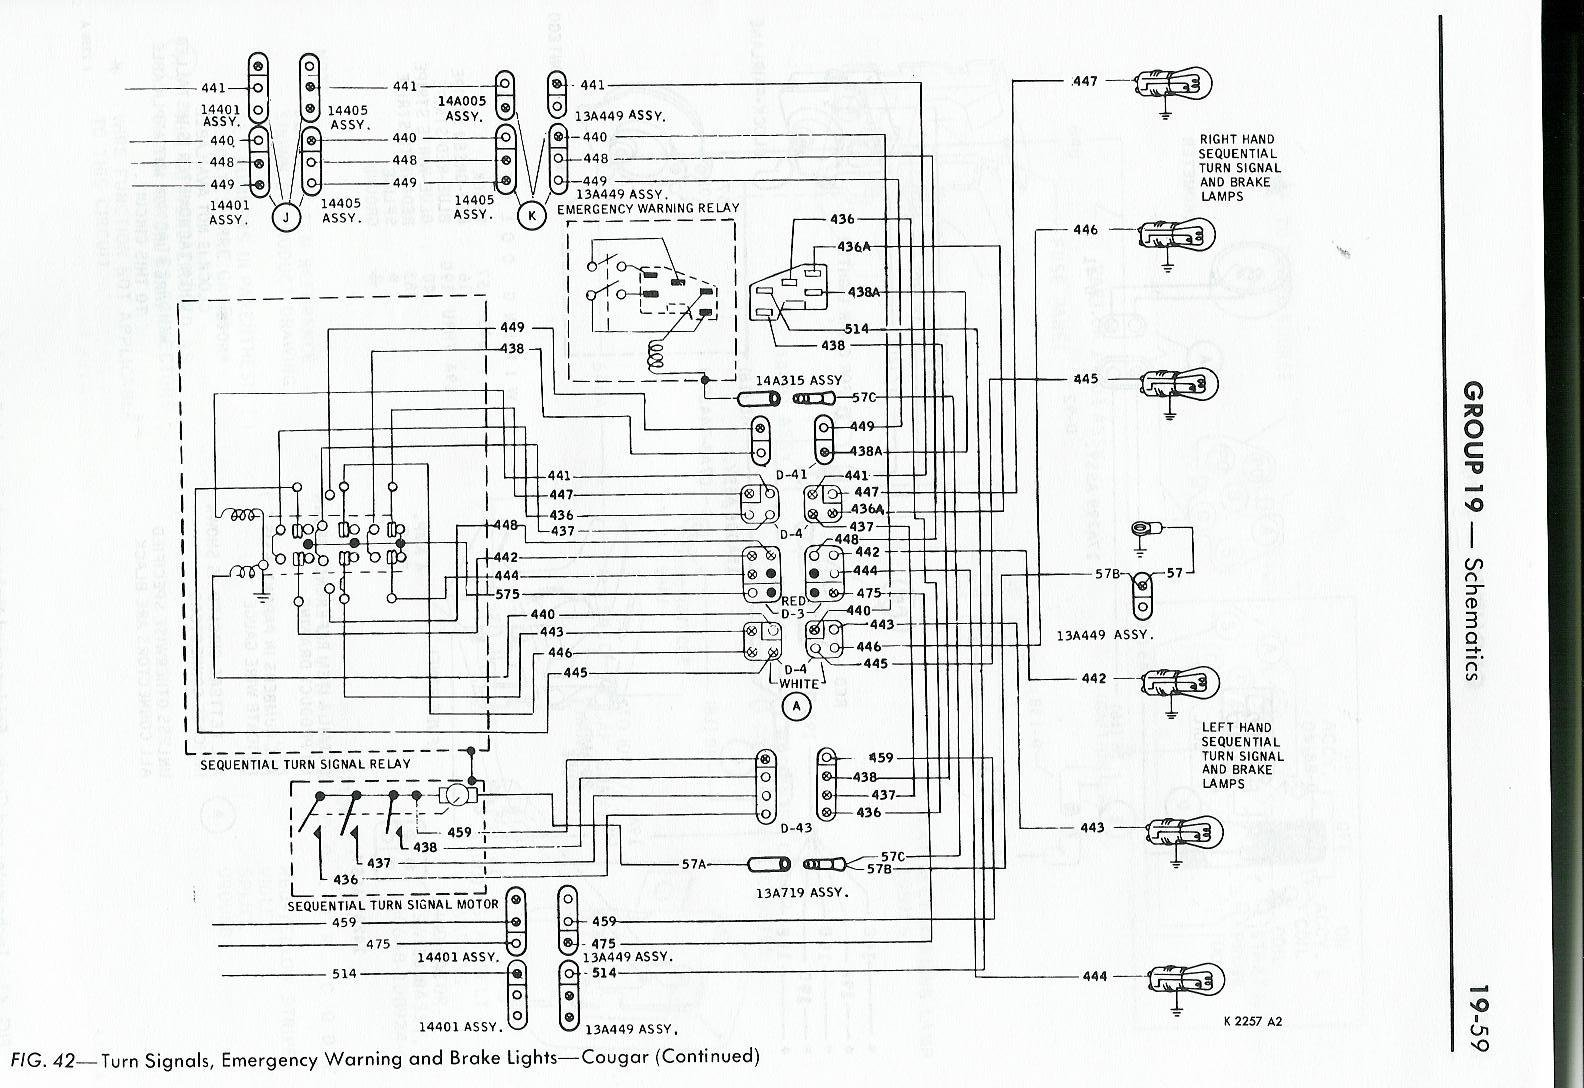 68 Cougar Fuse Box Diagram Wiring Schematics 1999 Mercury Grand Marquis Schematic Ford